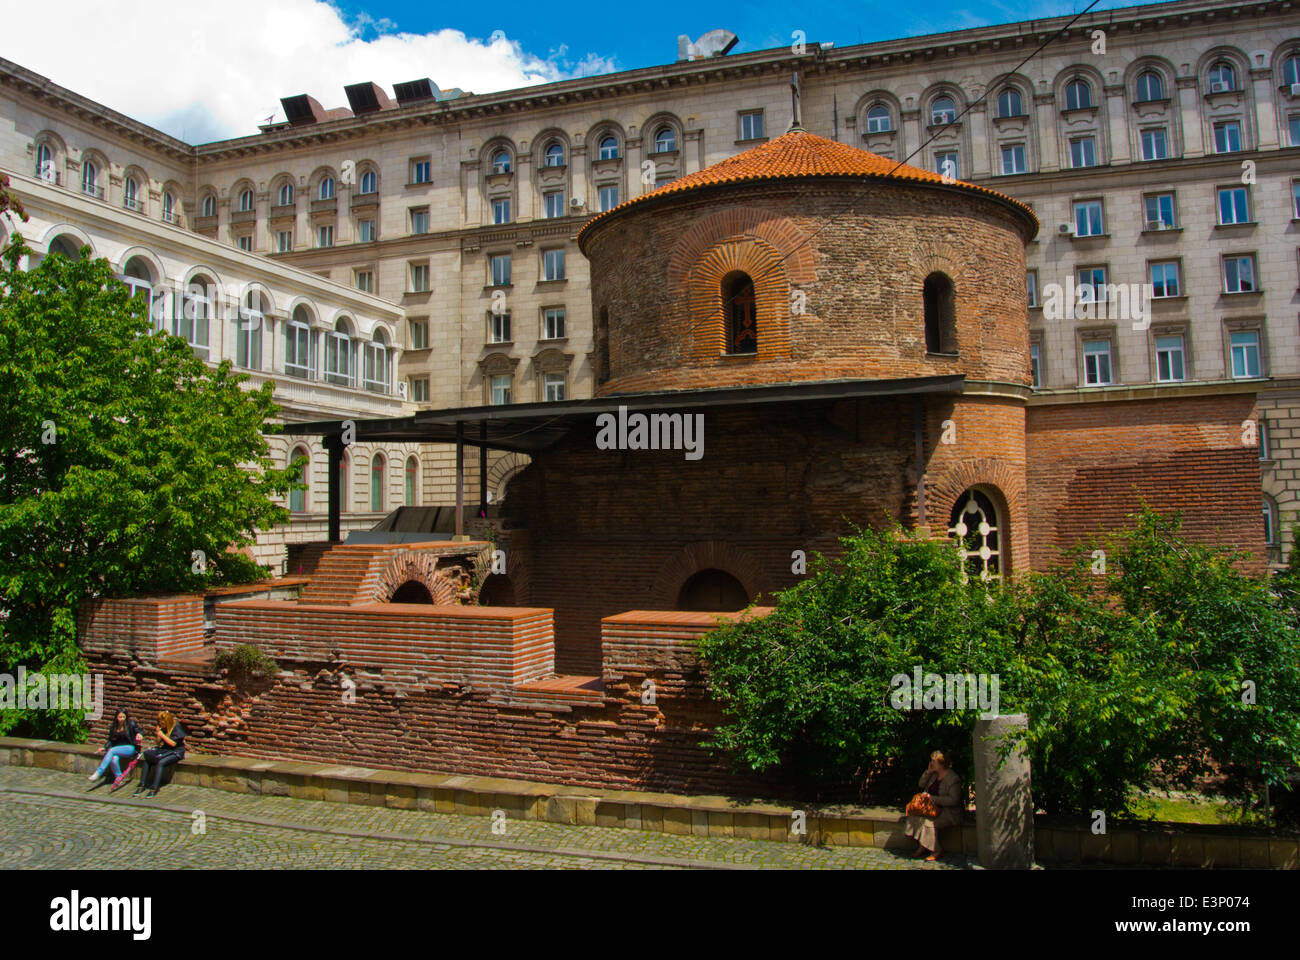 Church of St George, central Sofia, Bulgaria, Europe - Stock Image